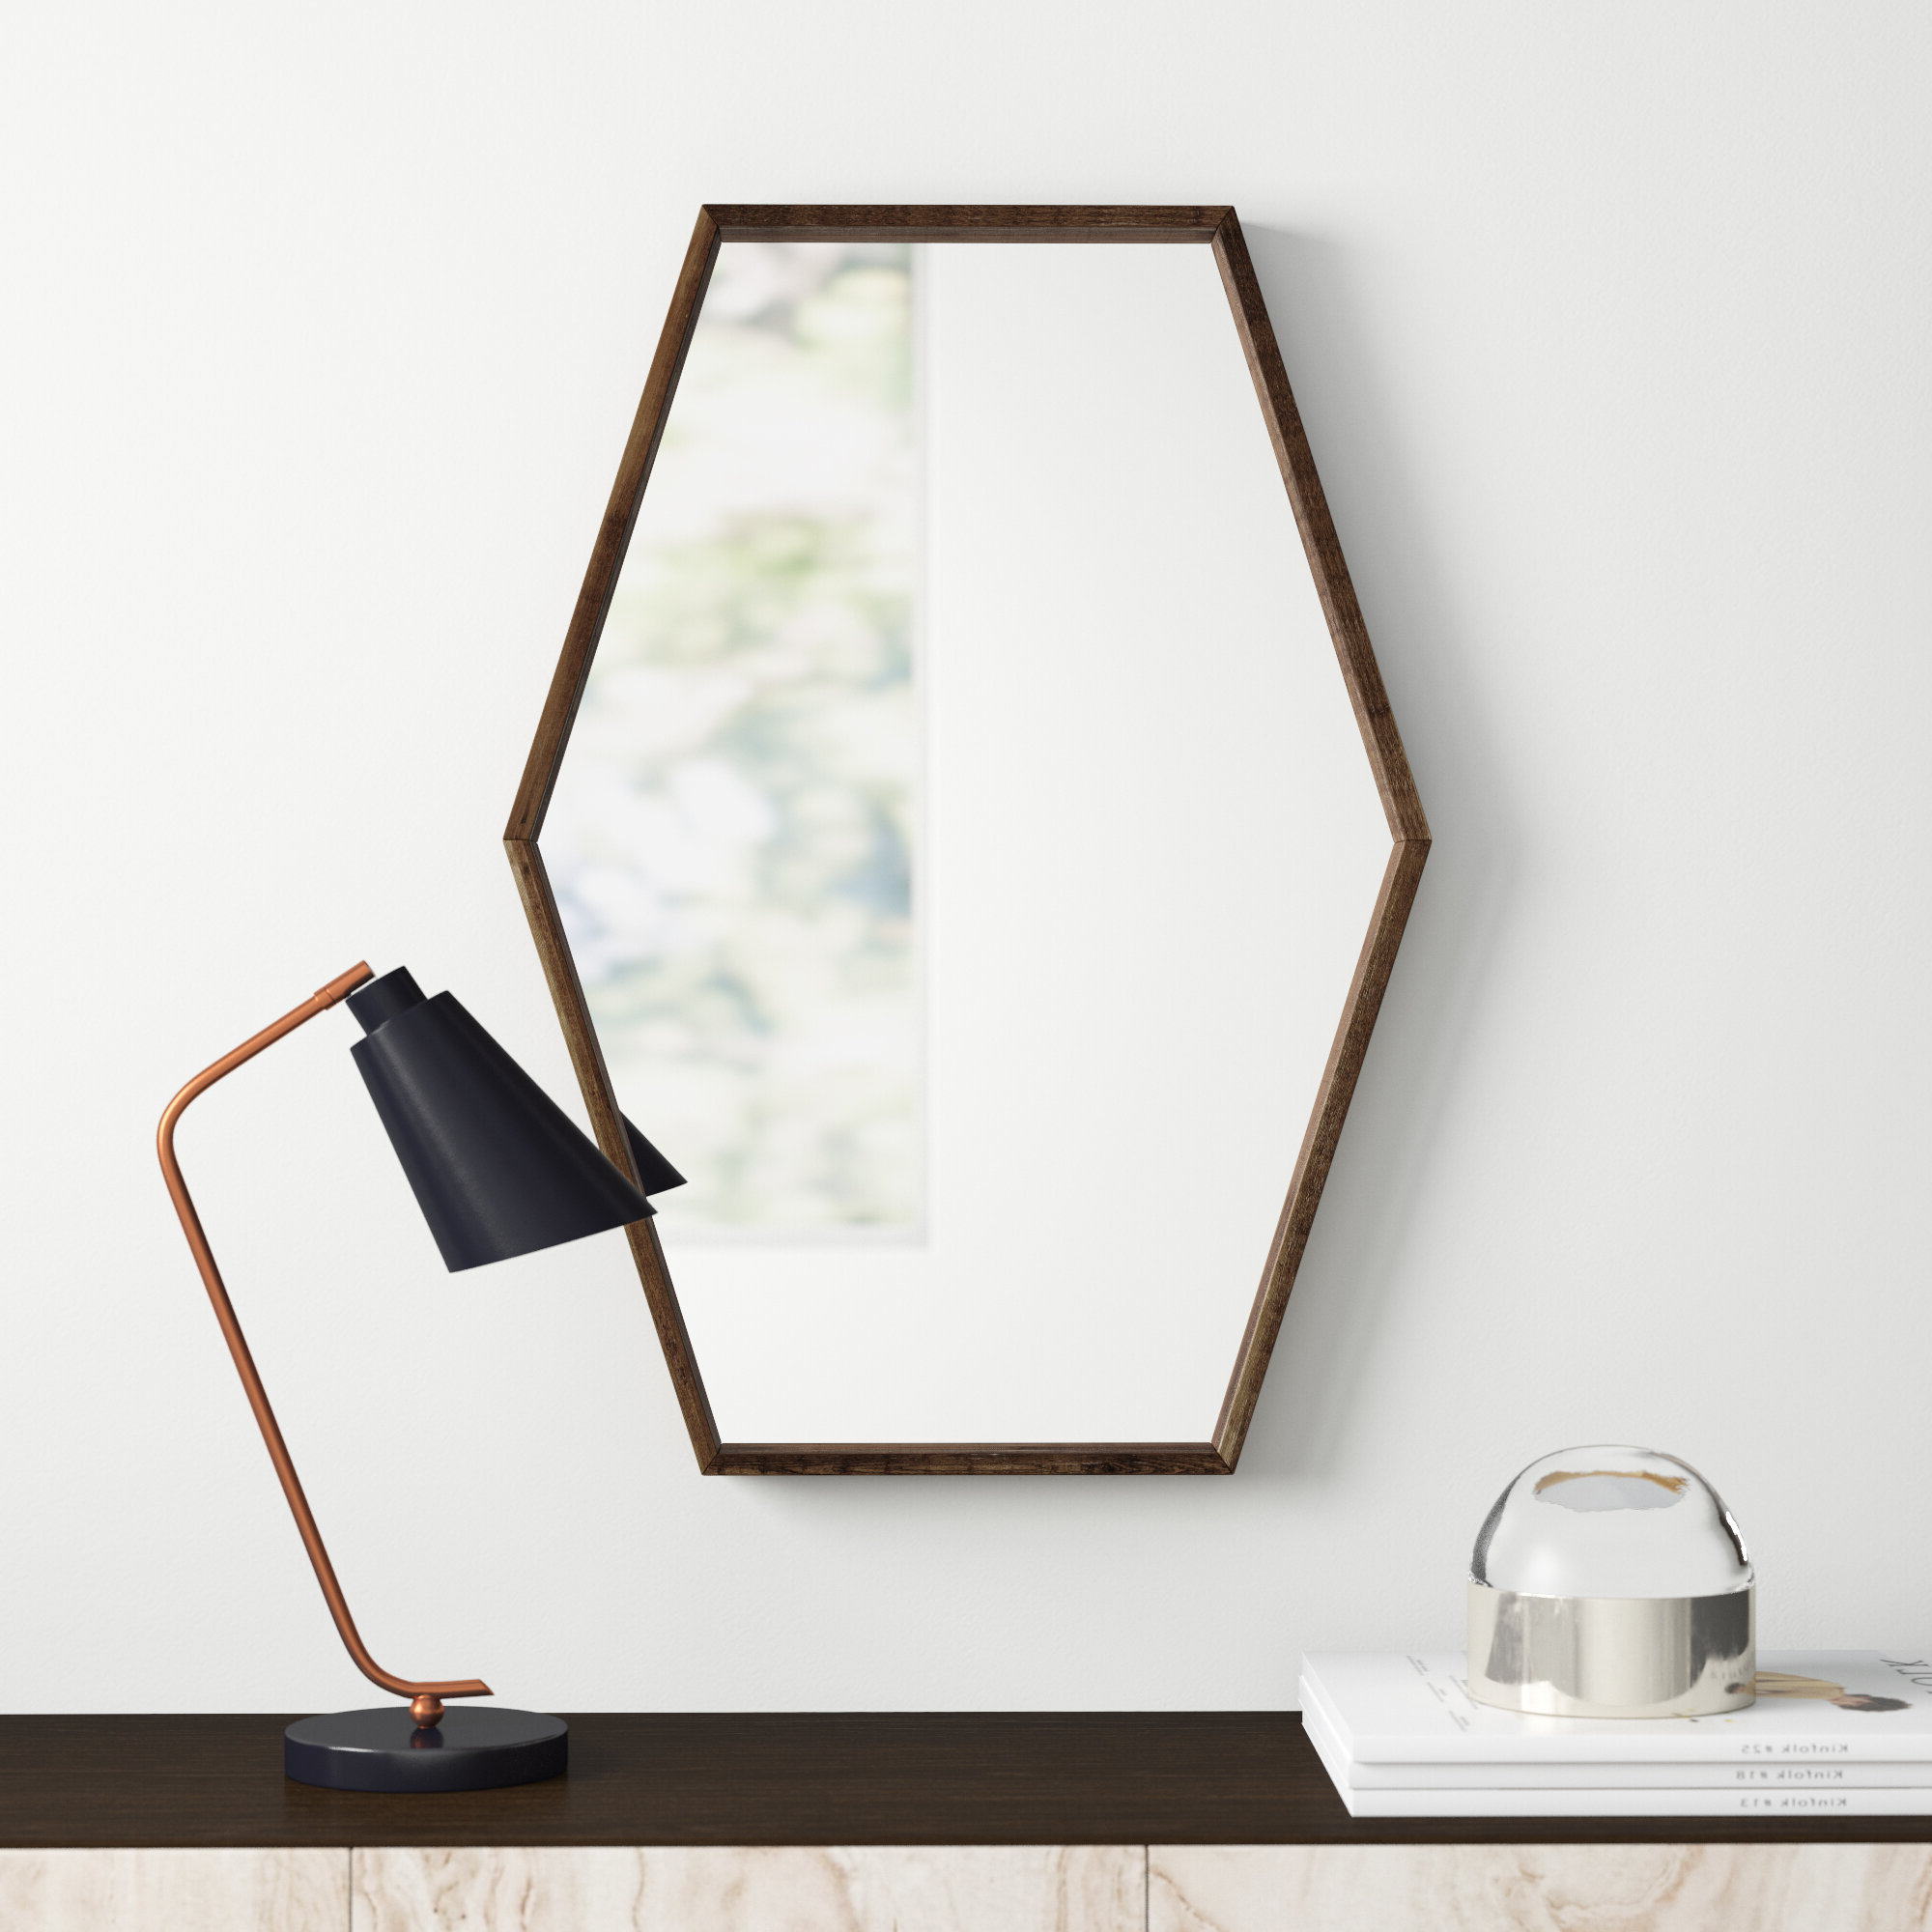 Widely Used Corey Wood Accent Mirror For Wood Accent Mirrors (View 15 of 20)